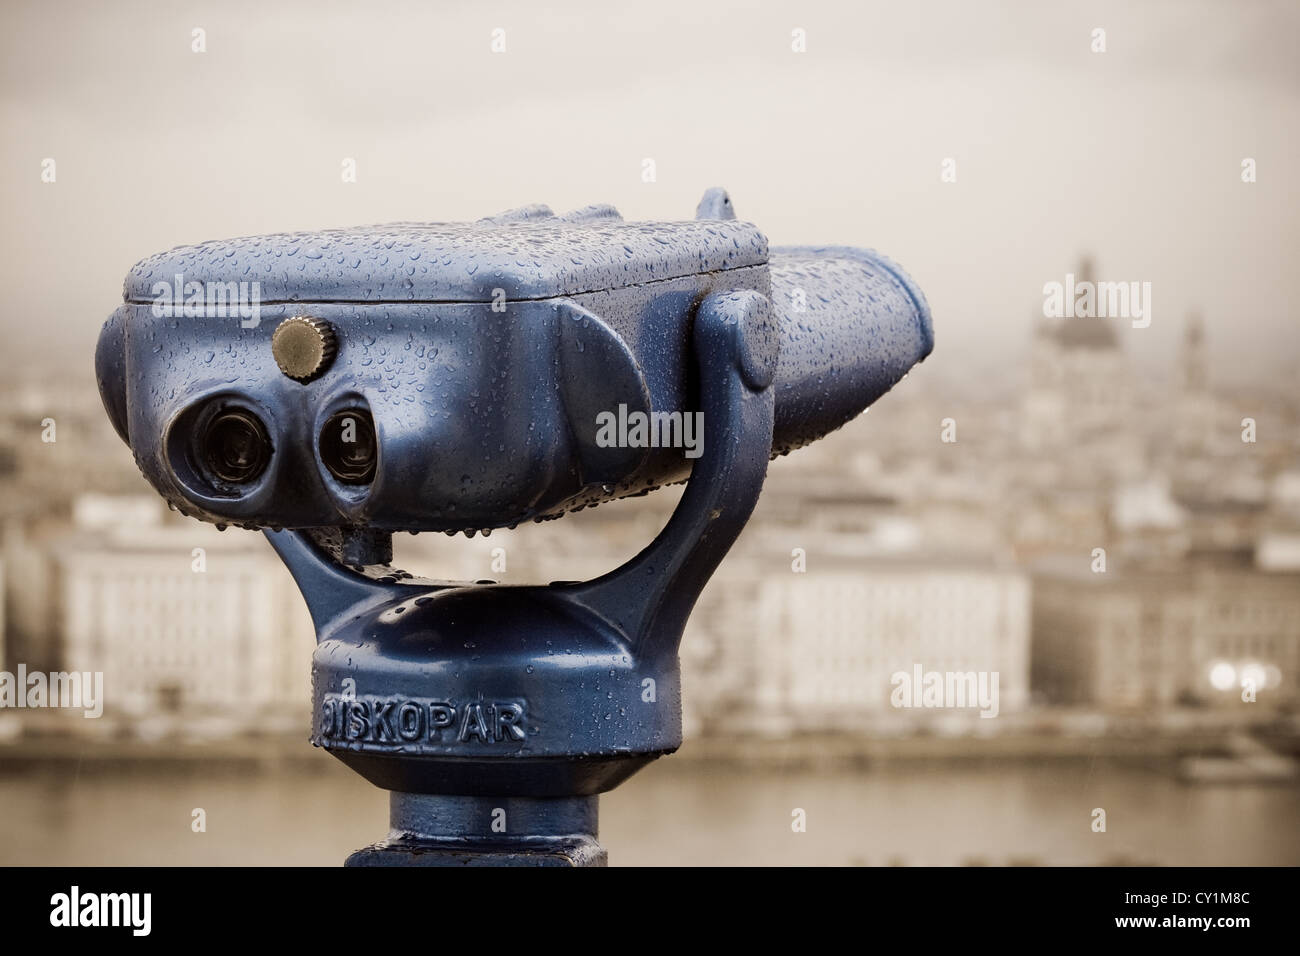 Blue binoculars in Budapest in a rainy day. - Stock Image